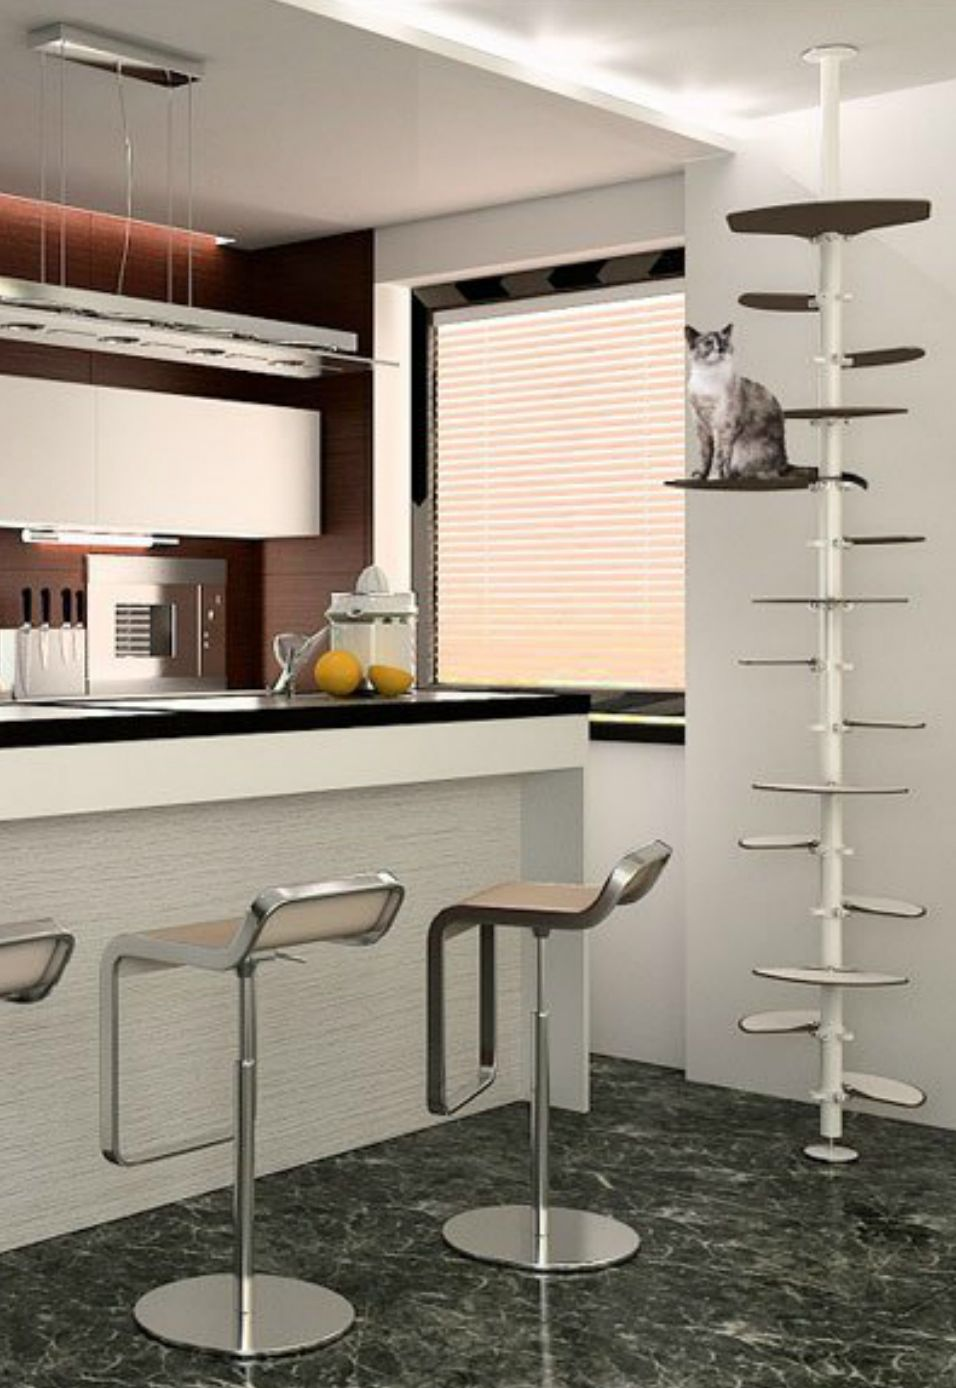 c7690f37a8e5 Cat Furniture Solutions for Apartments and Small Spaces - CatsPlay  Superstore